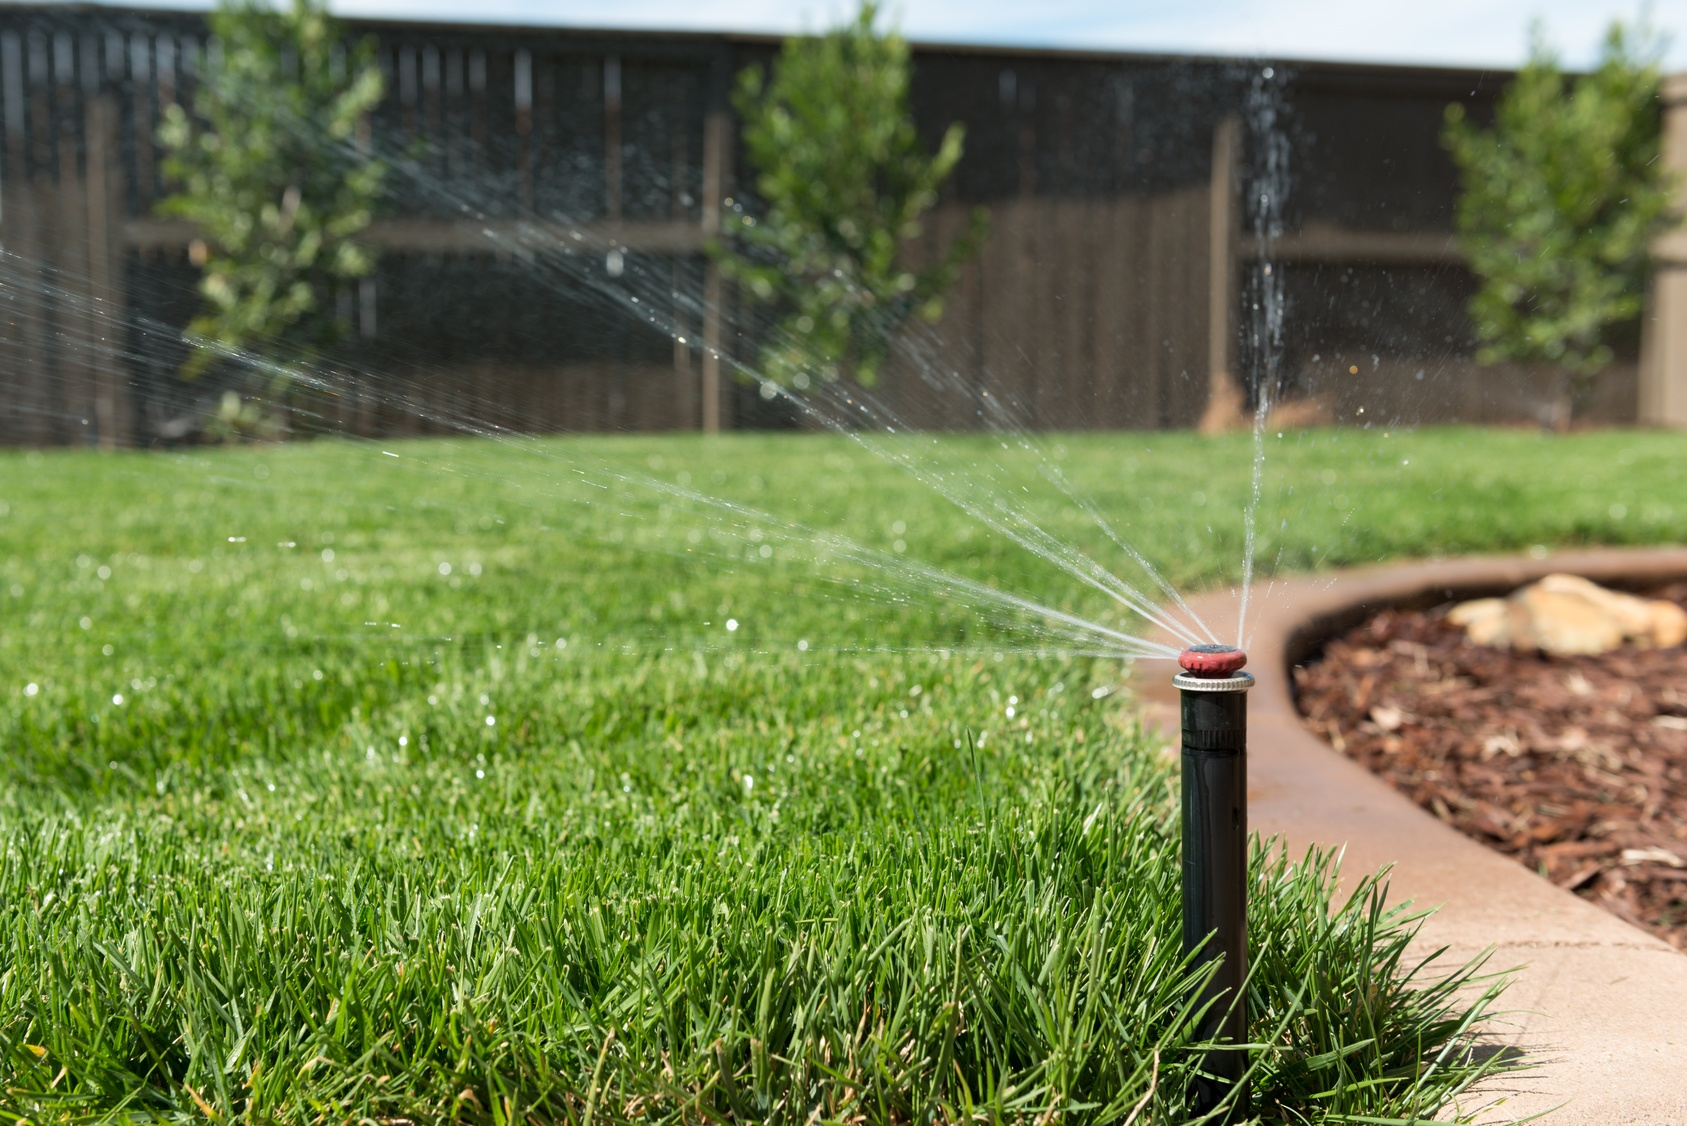 Step-by-Step Guide to Repairing a Sprinkler Head or Line